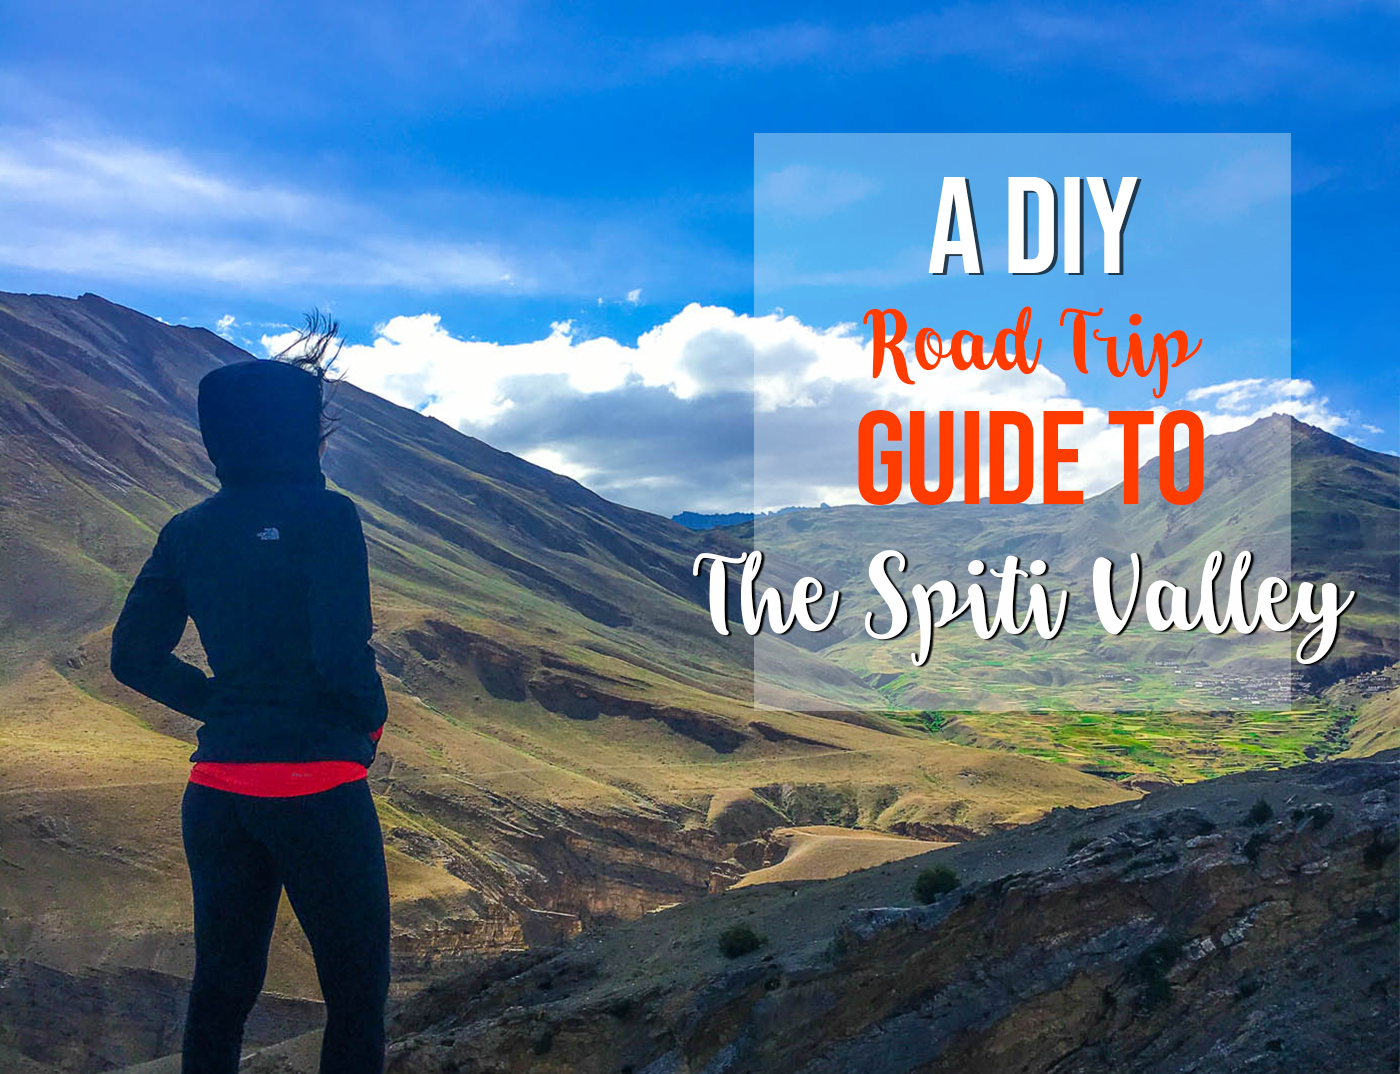 A DIY  ROAD TRIP GUIDE TO THE SPITI VALLEY